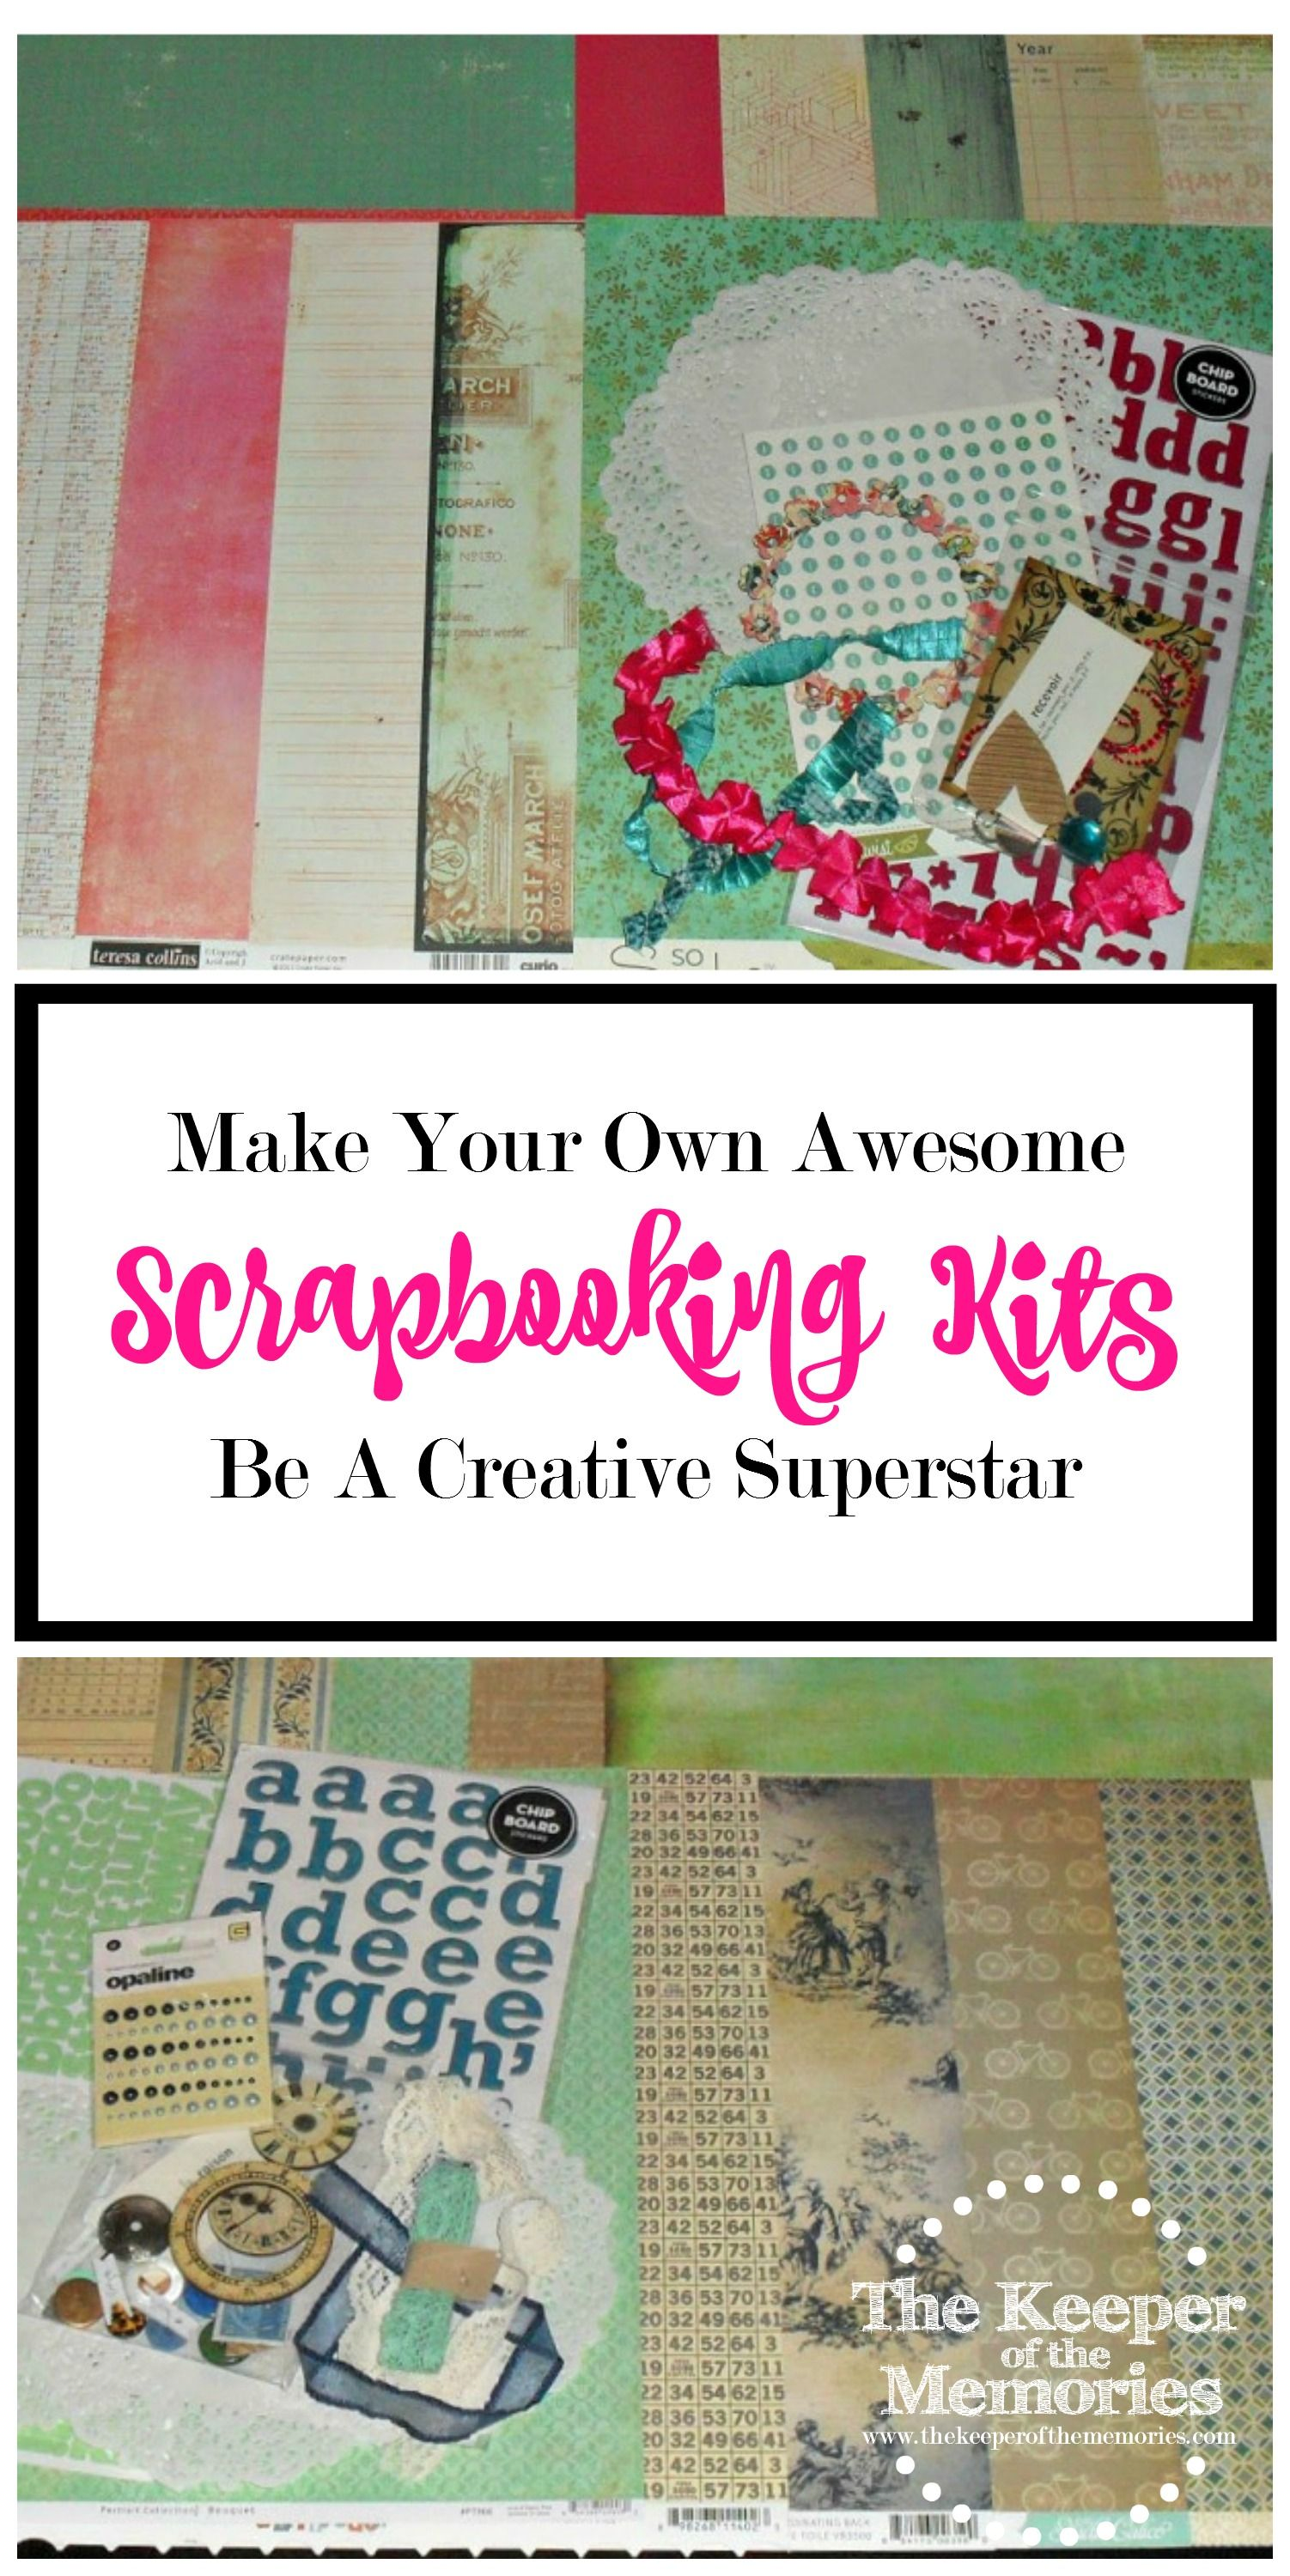 How To Make Your Own Awesome Scrapbooking Kits | Get "|1502|3000|?|en|2|d339dd52cfced026e8c2ce21e6f9cc48|False|UNLIKELY|0.36473724246025085